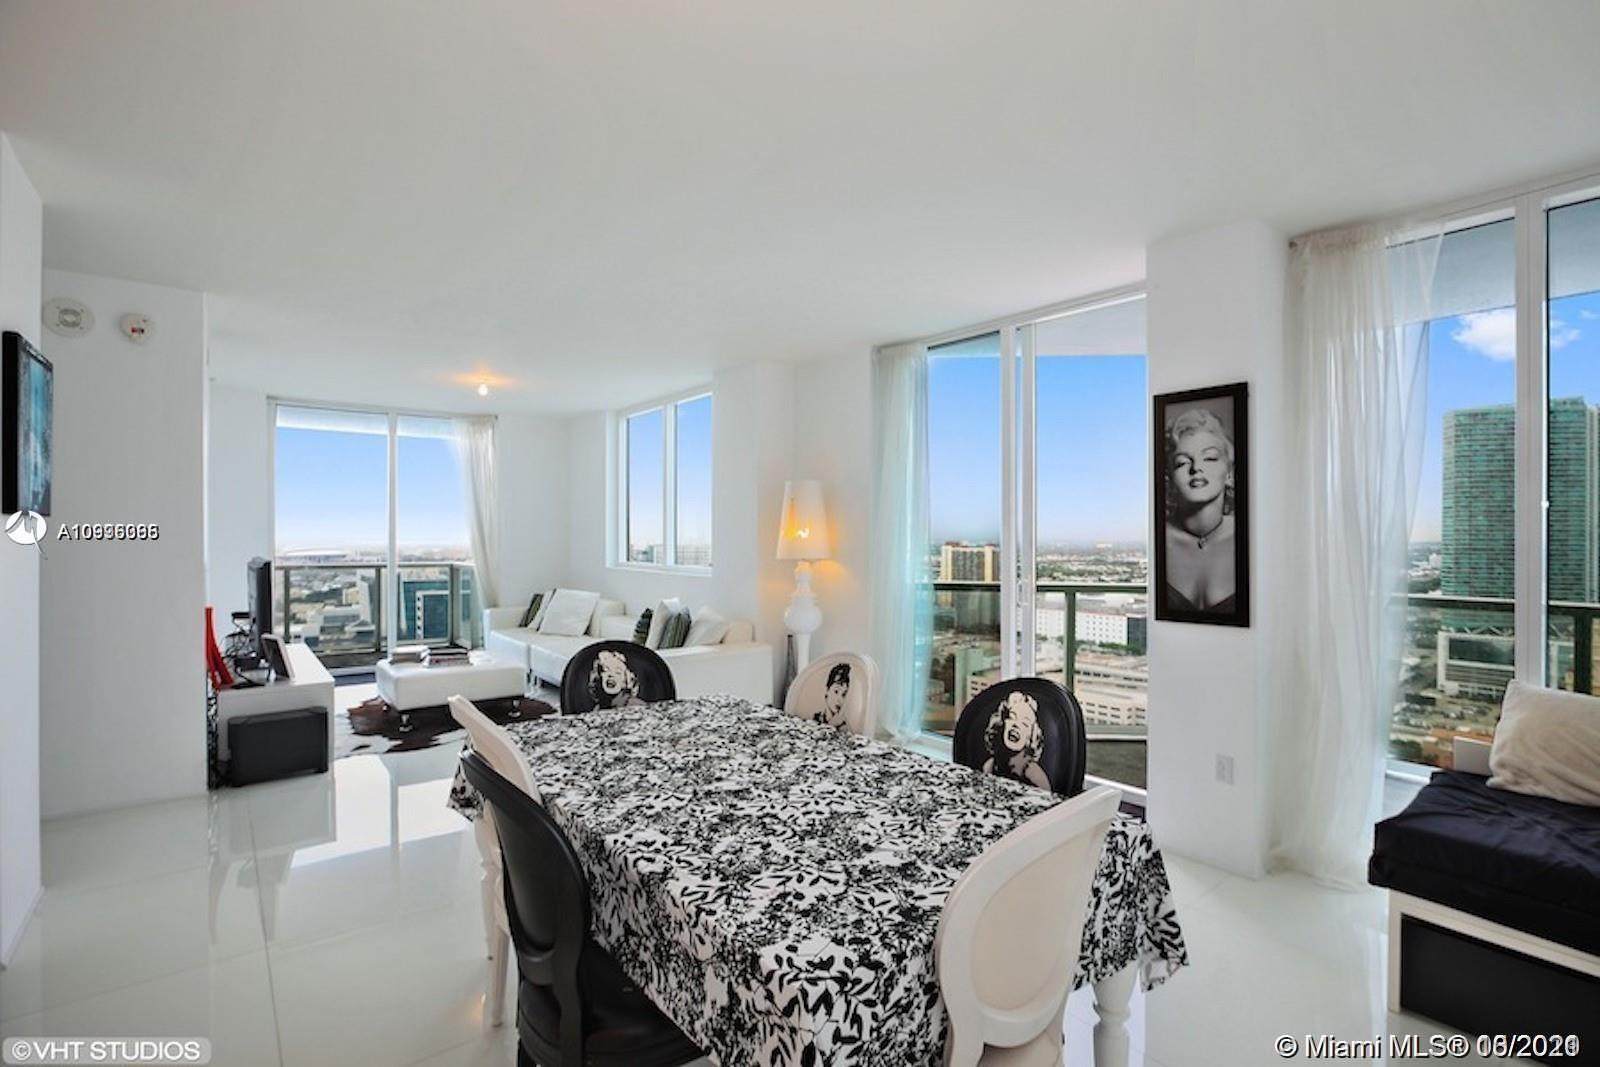 Beautiful Corner 1,203sqft. 2 Bedroom 2 Bath at Vizcayne South Tower. Expansive city and bay view fr